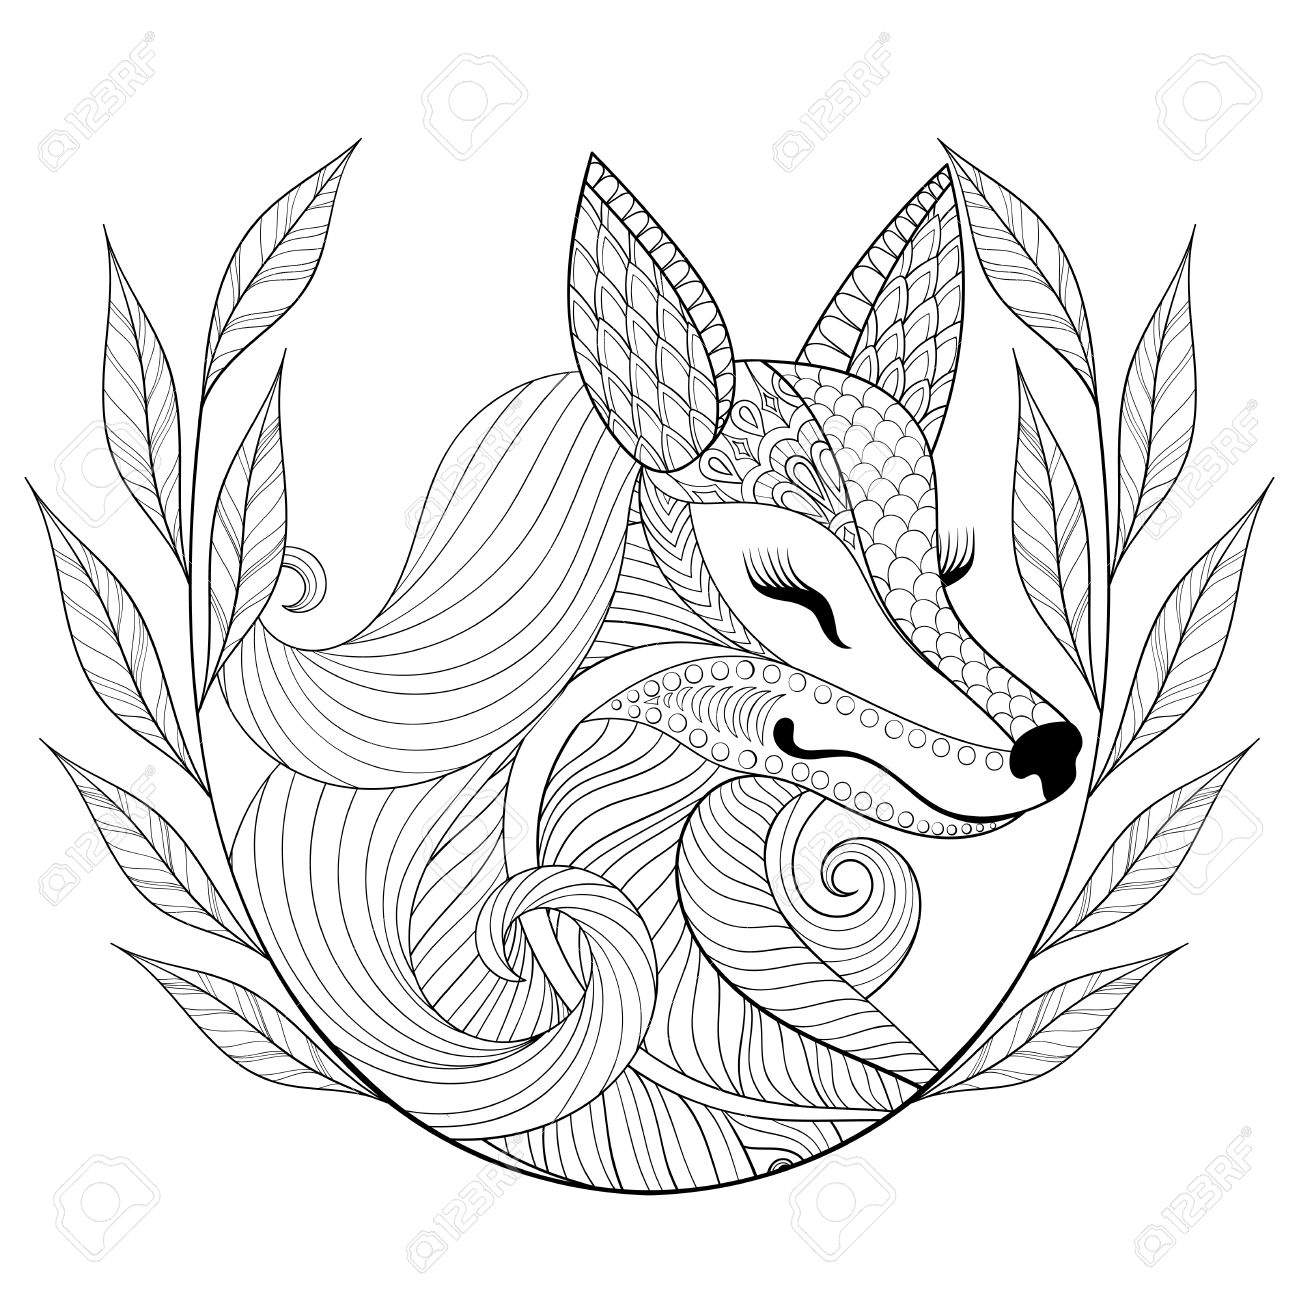 1299x1300 Fox Face In Monochrome Doodle Style.wild Animal With Wreath, Face